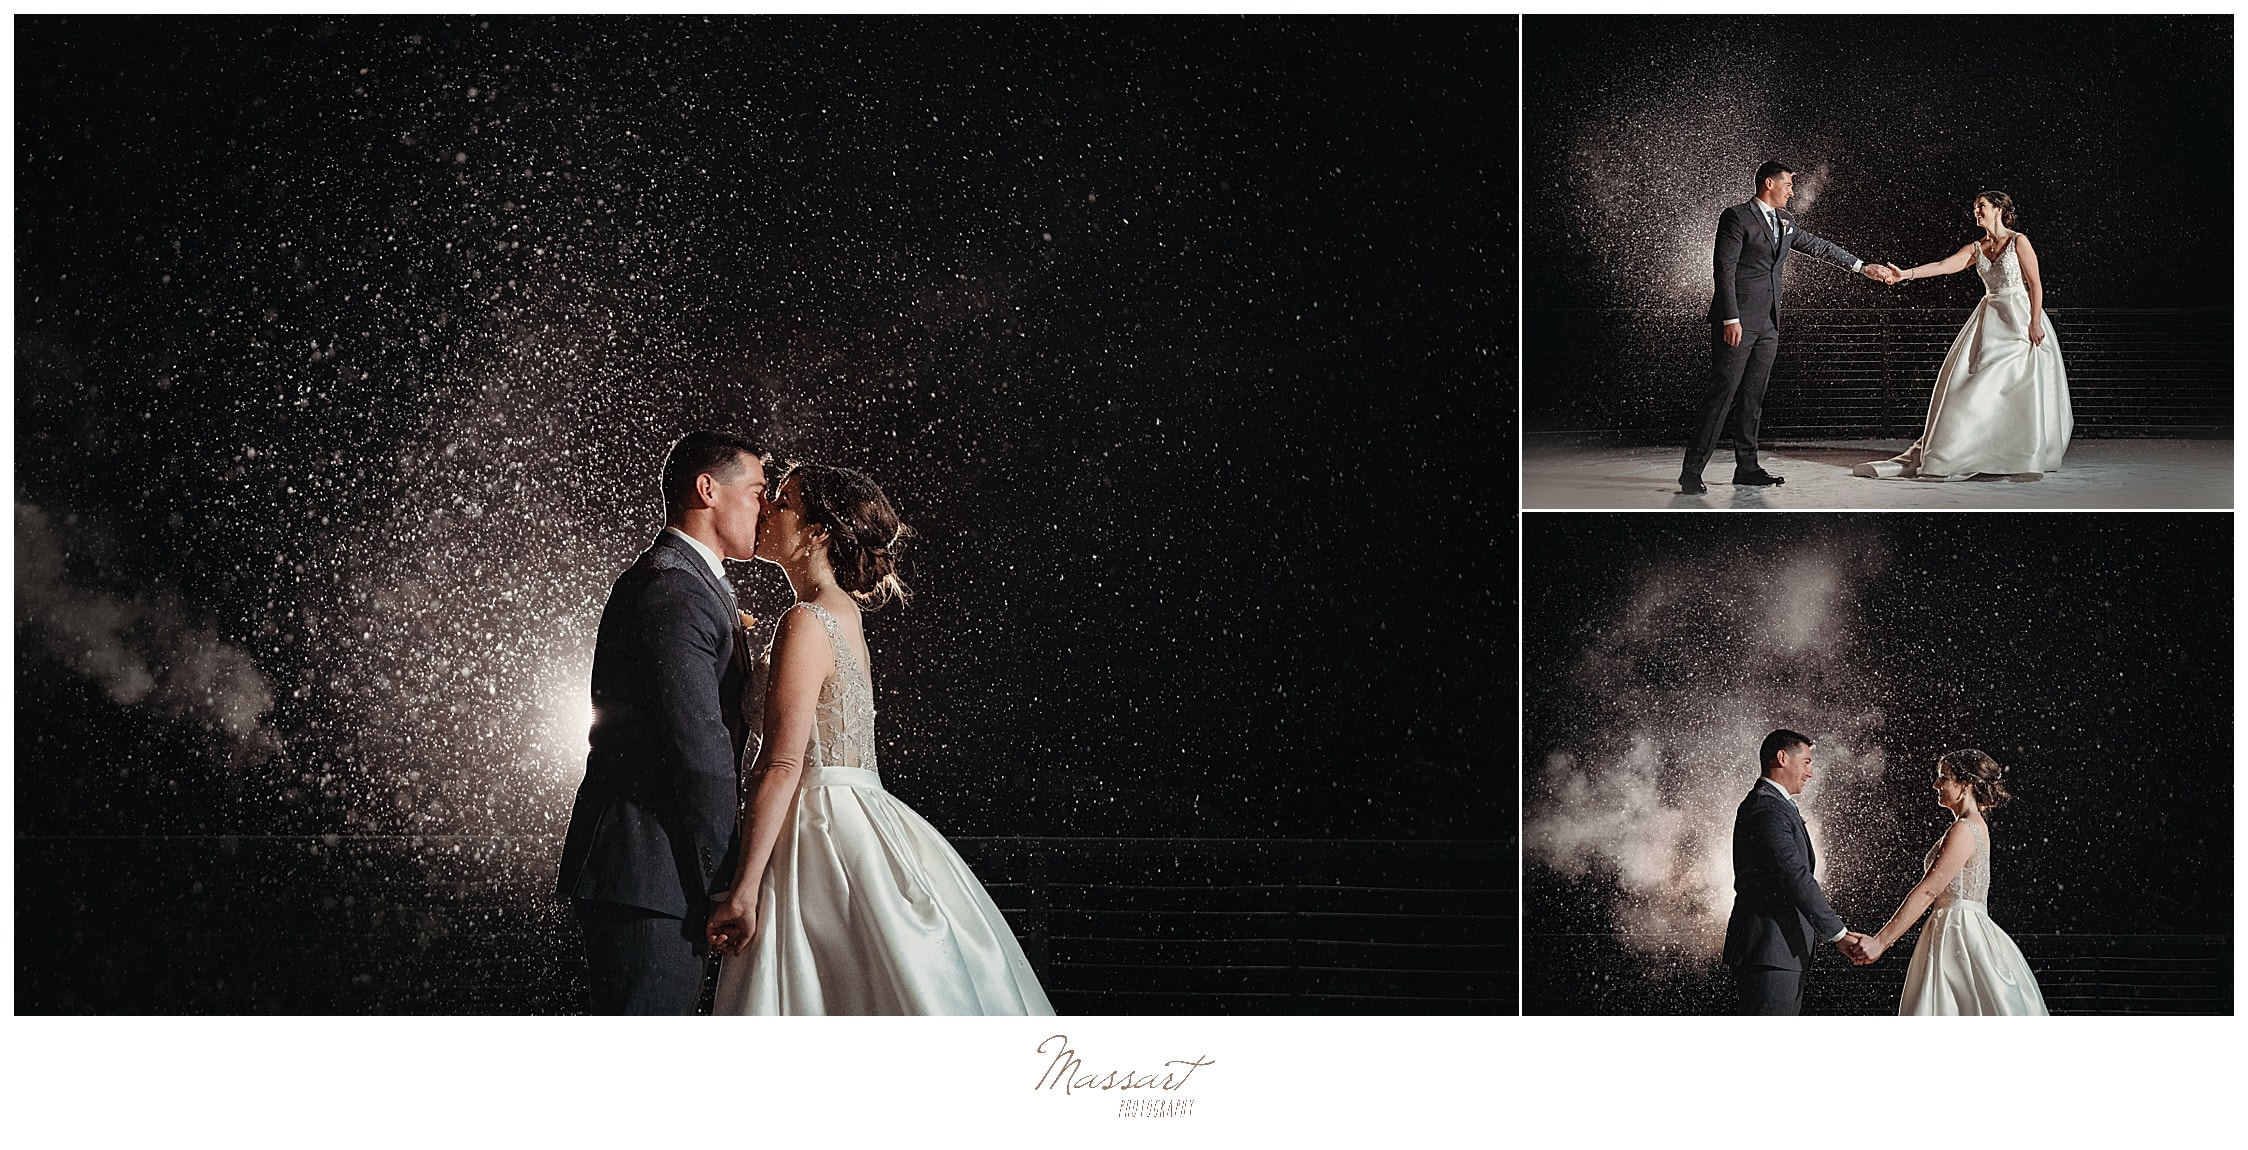 nighttime wedding portraits in the snow at Lakeview Pavilion by Massart Photography